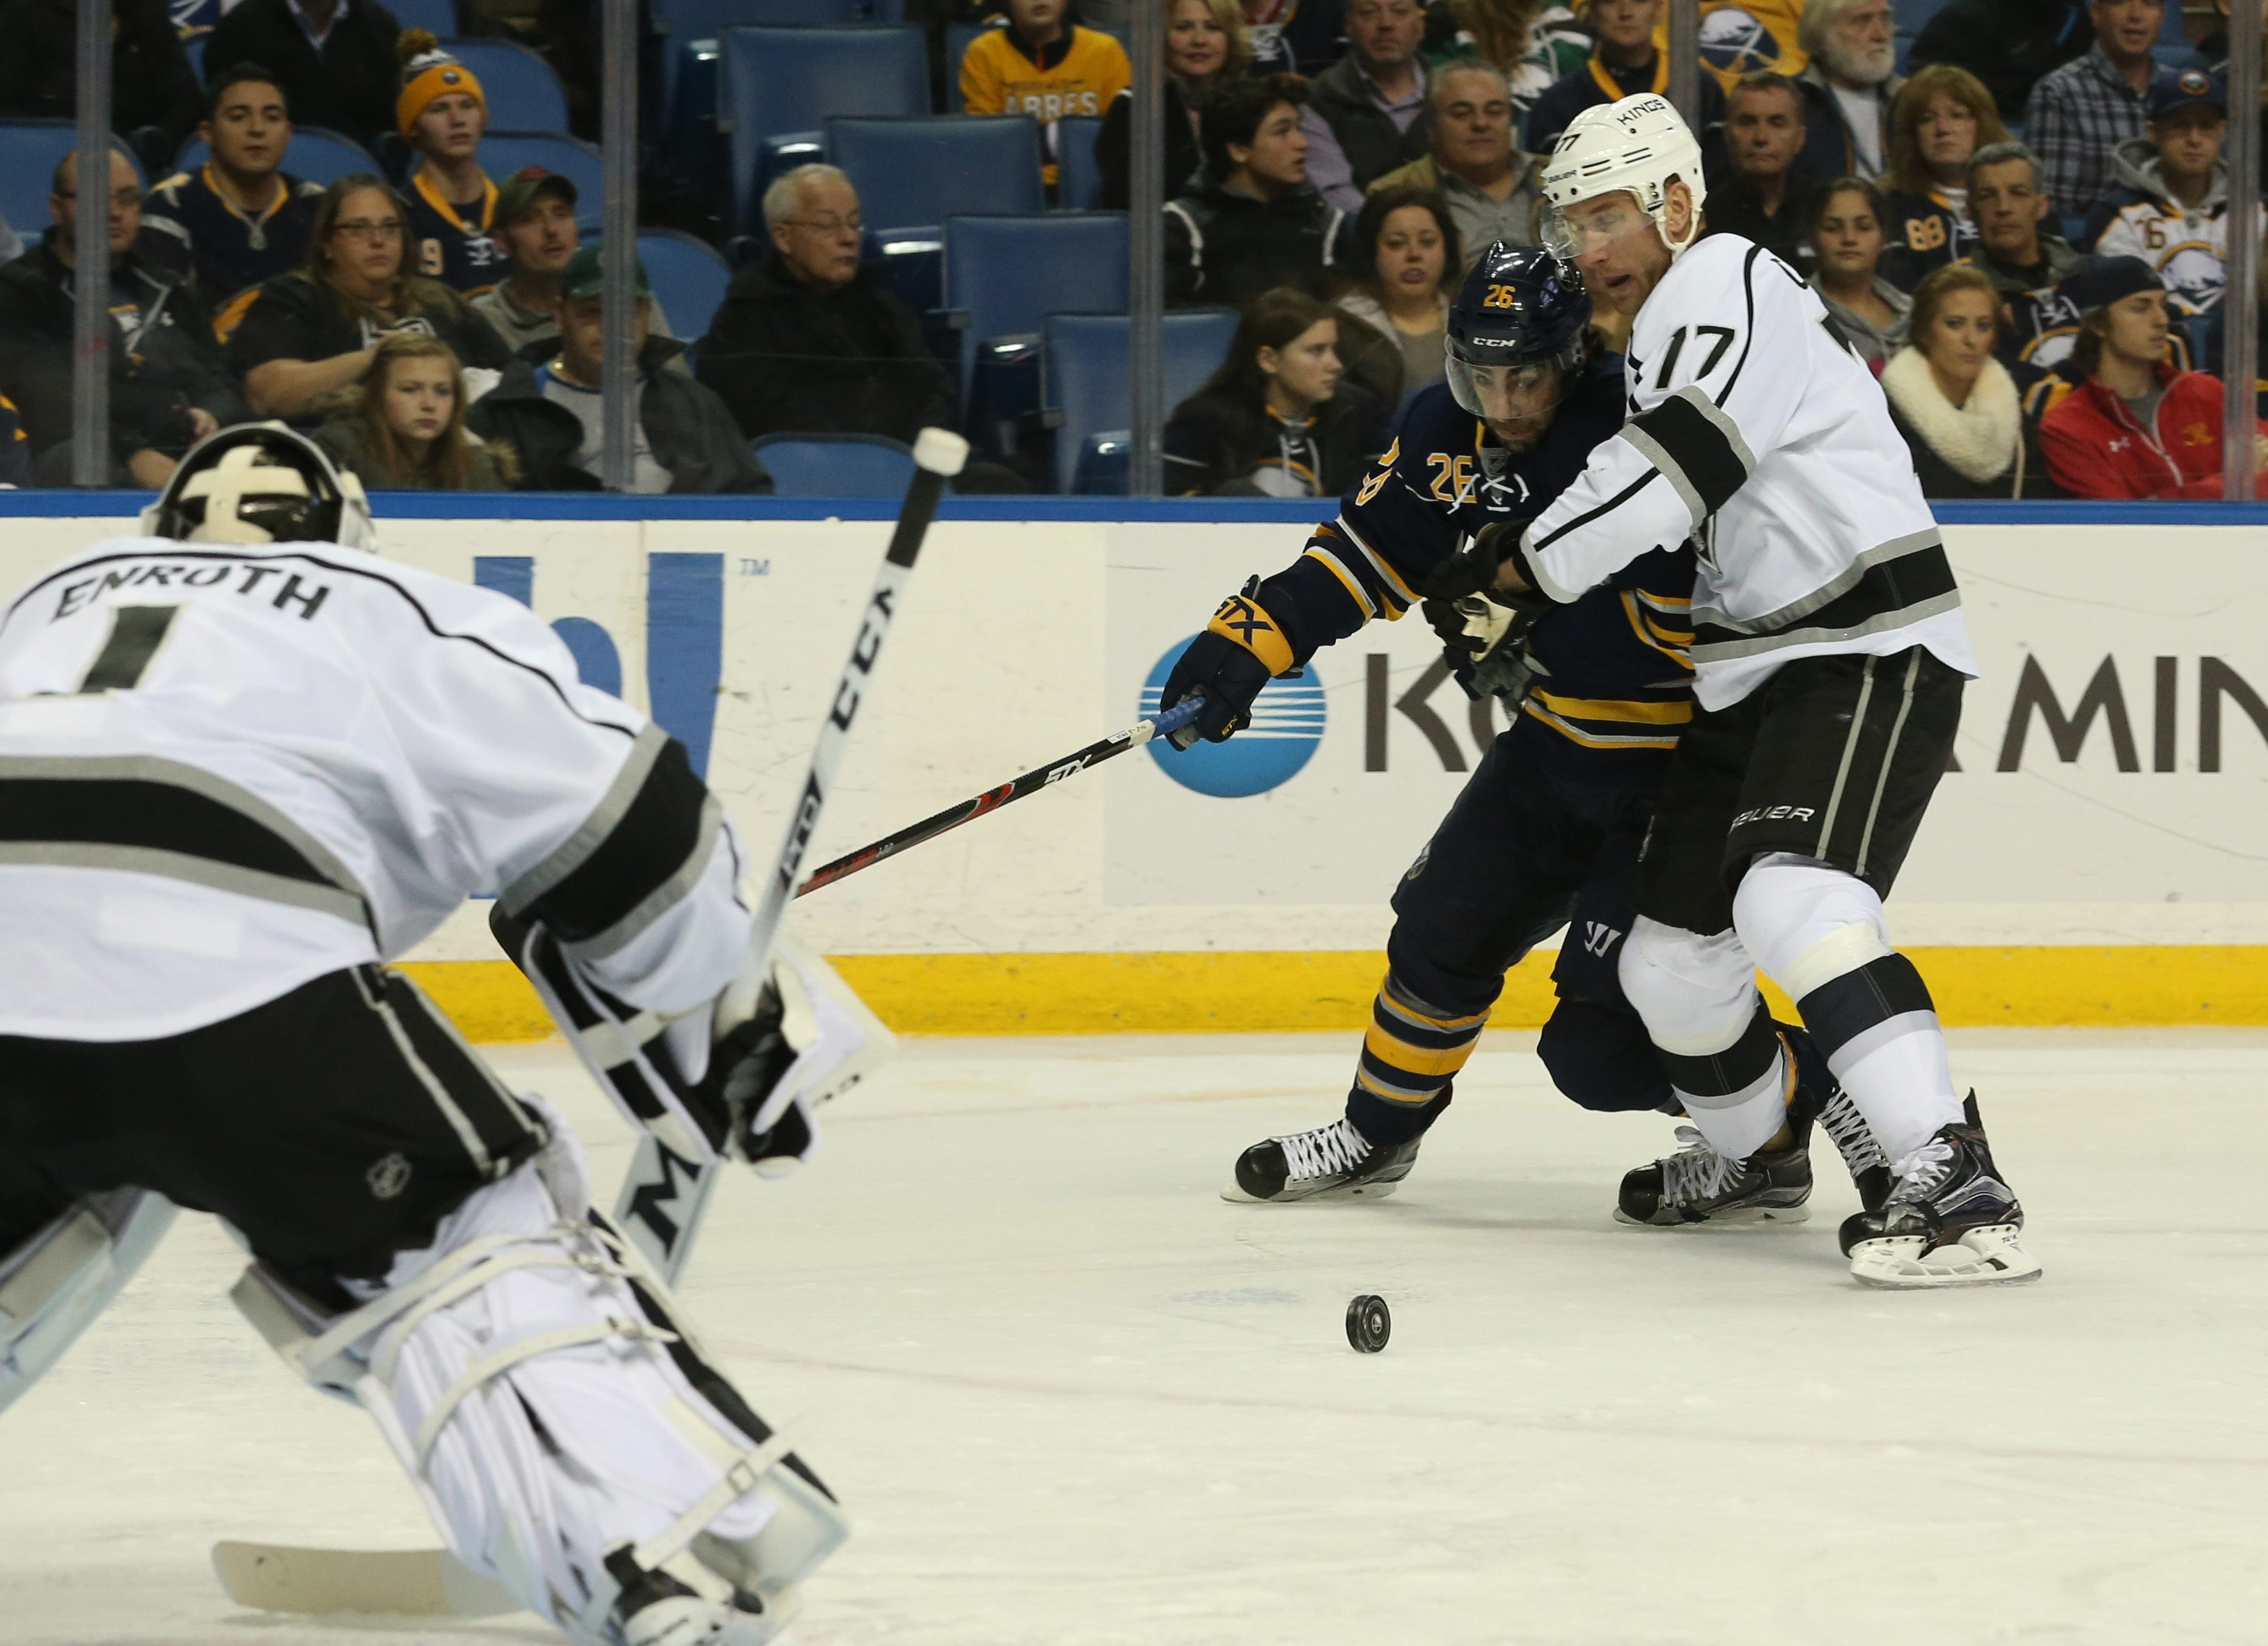 Sabres coach Dan Bylsma has directed forward Matt Moulson to get near the net for rebounds and deflections.